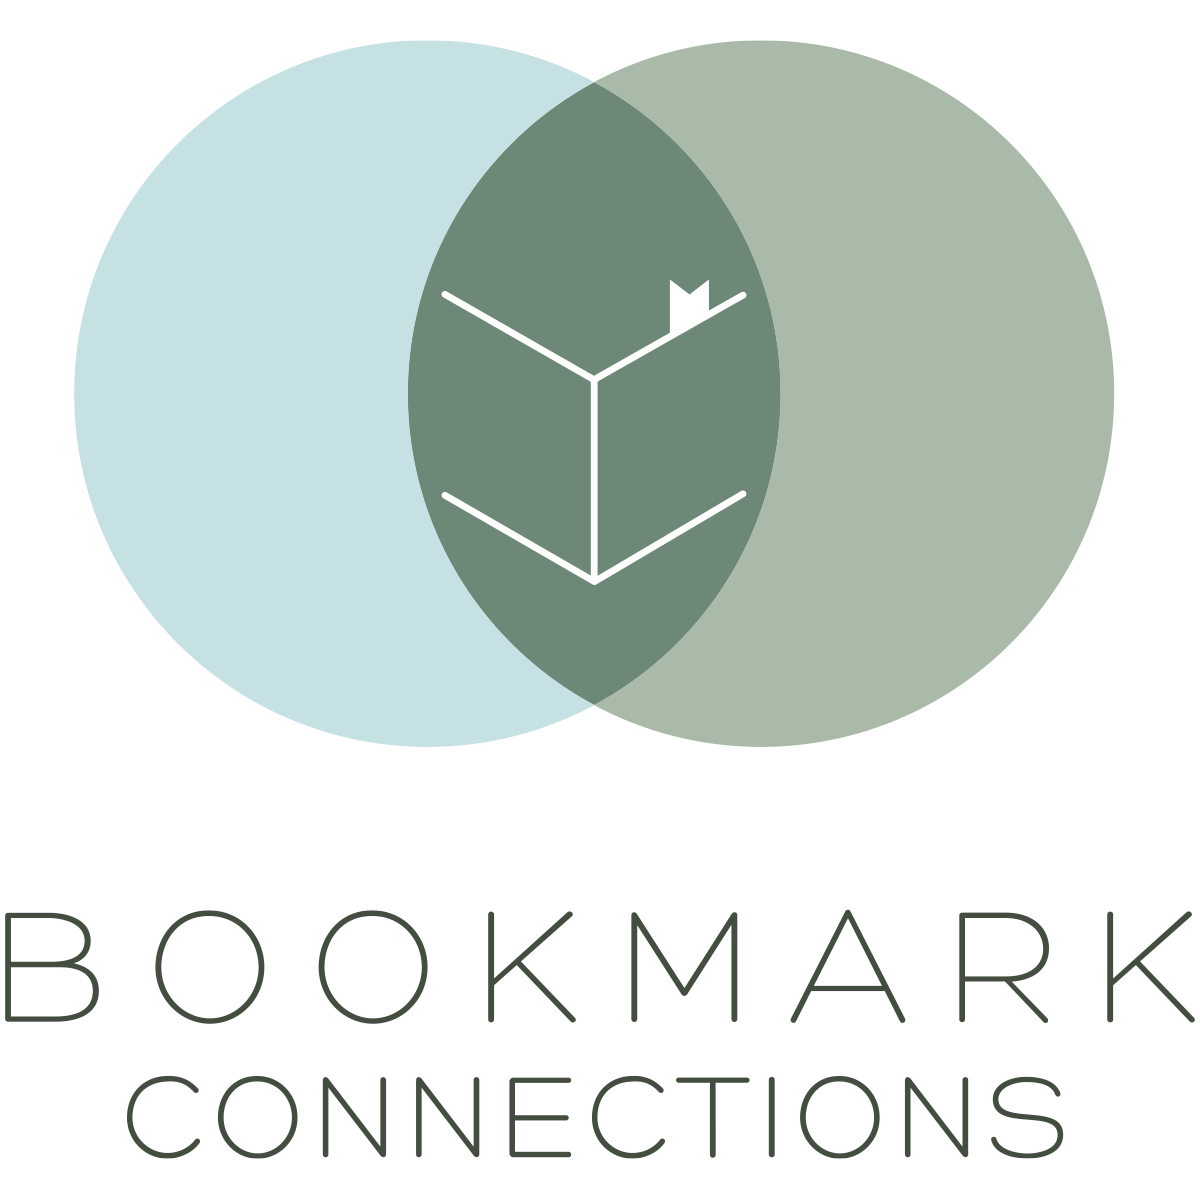 Bookmark Connections